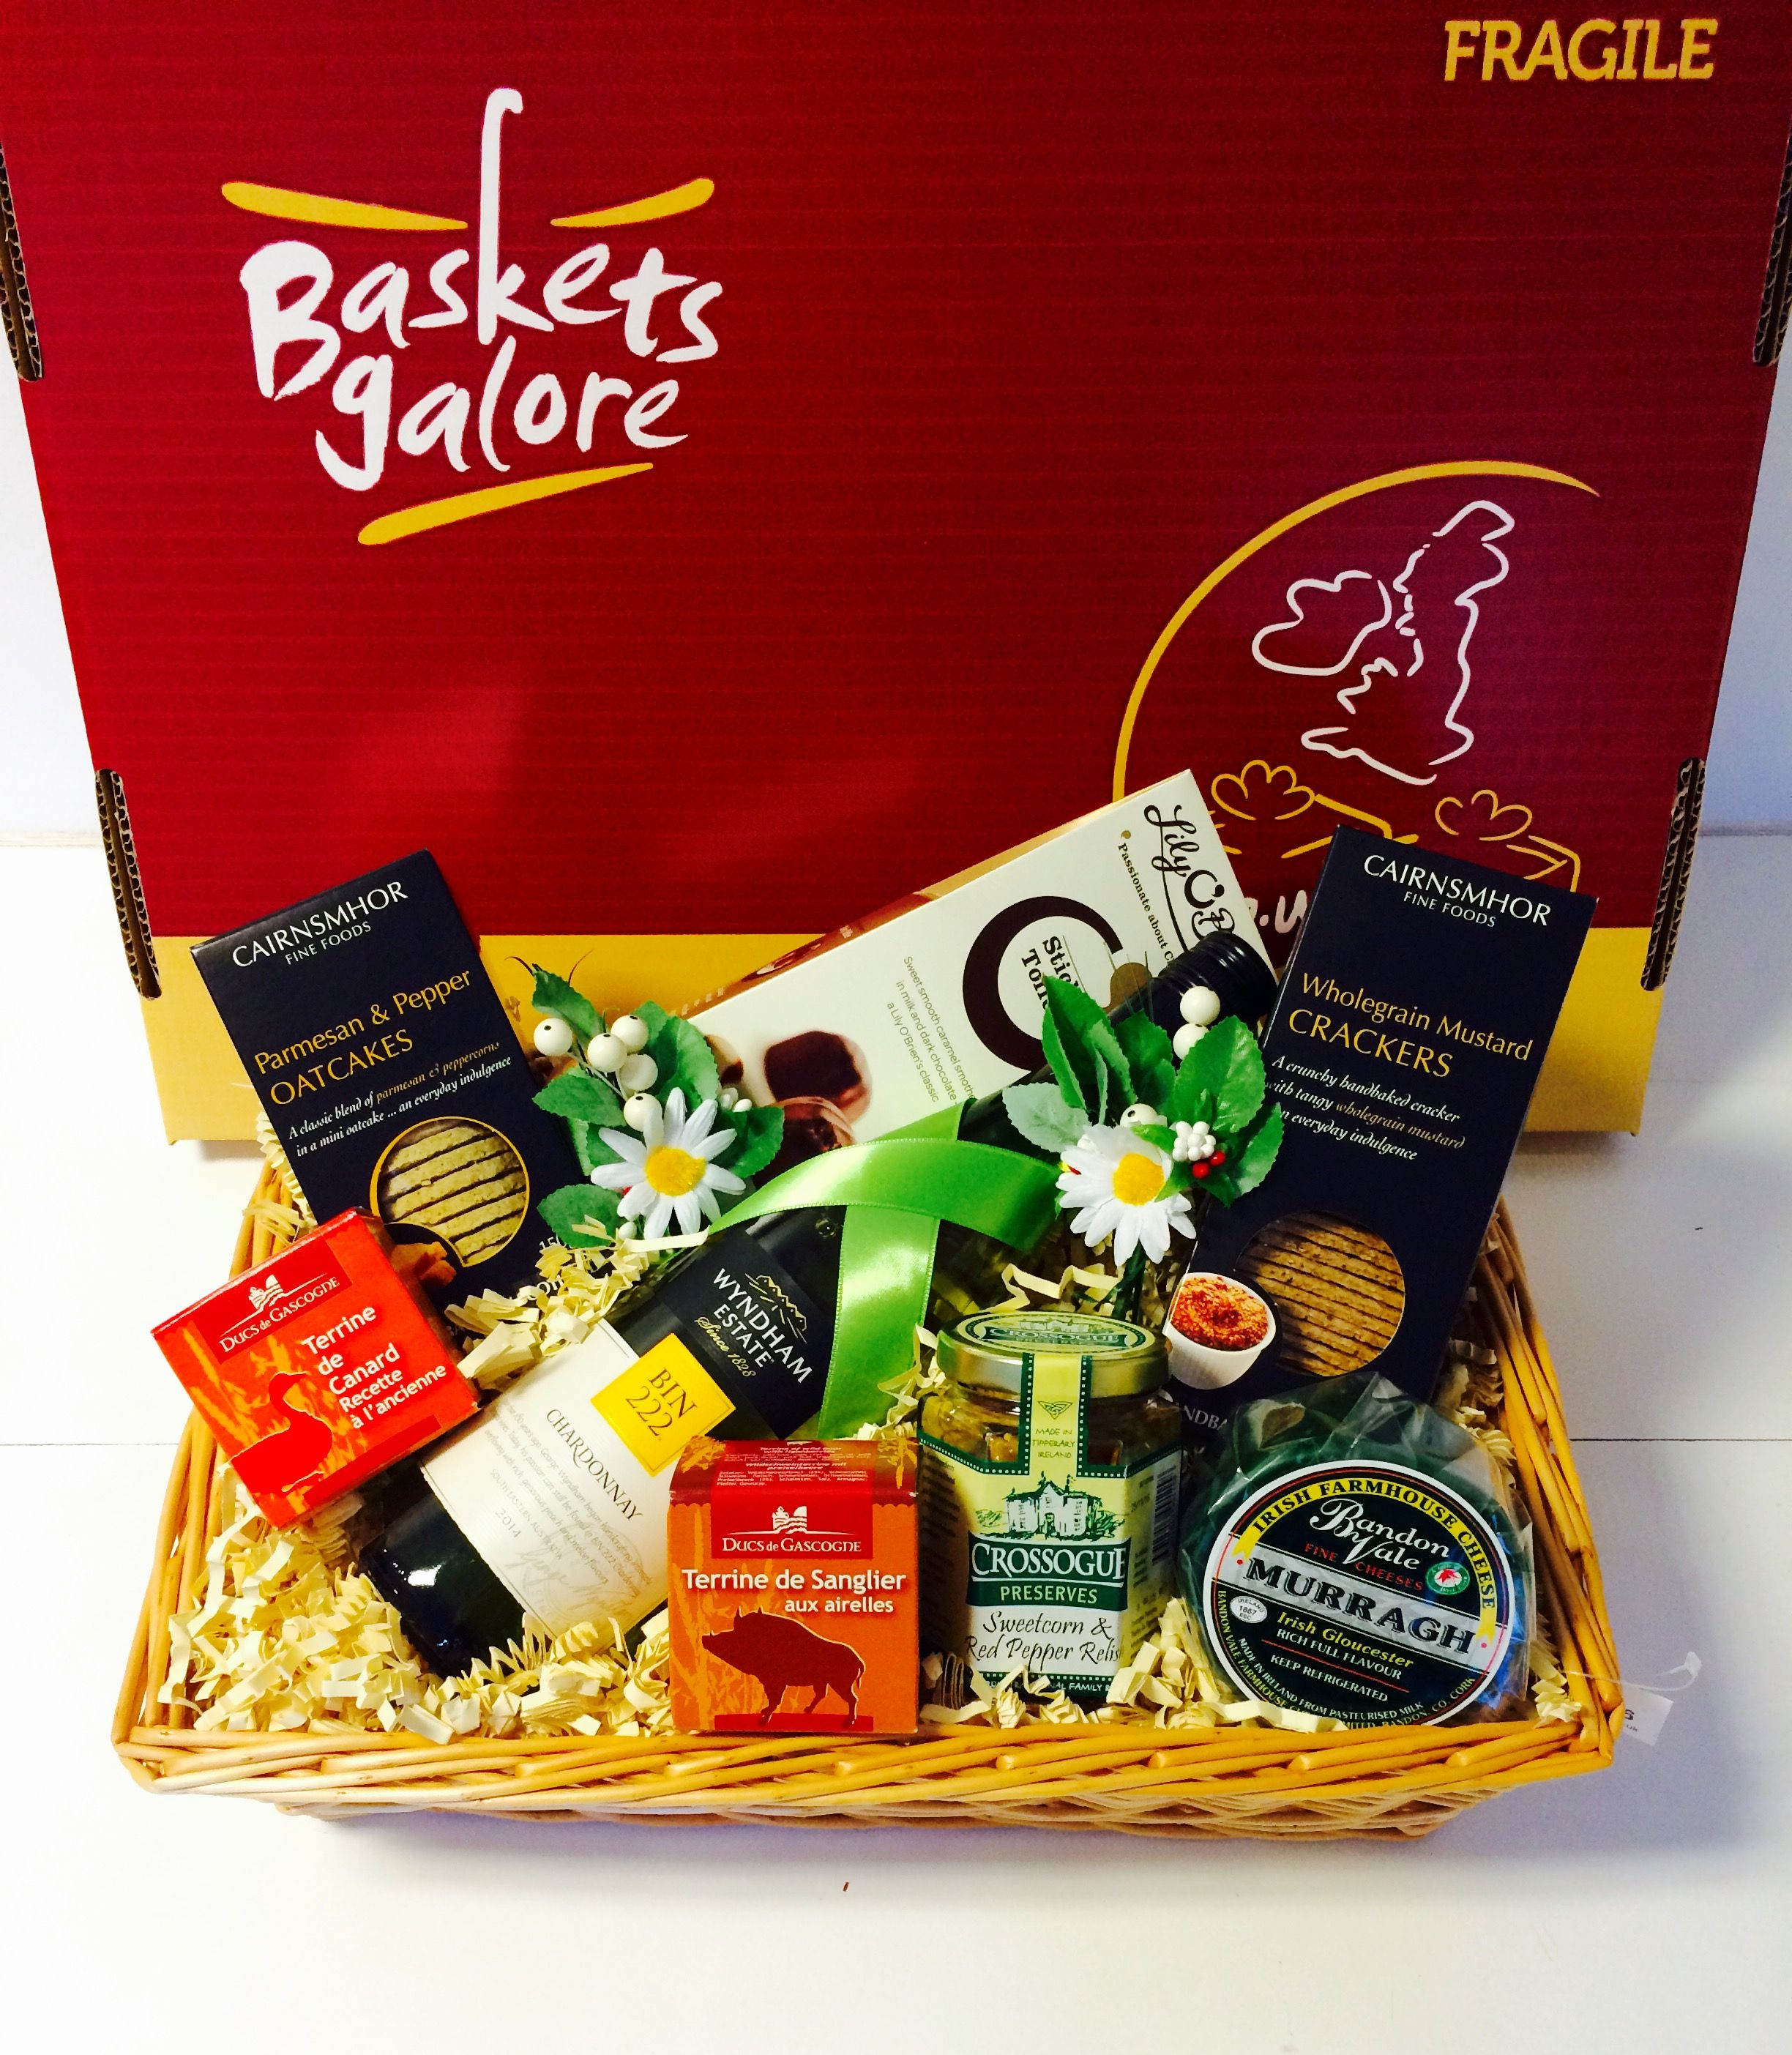 Cheese Crackers Chutney Pate Wine And Chocolate In A Gift Basket Perfect Gift Hampers Oat Cakes Gift Baskets